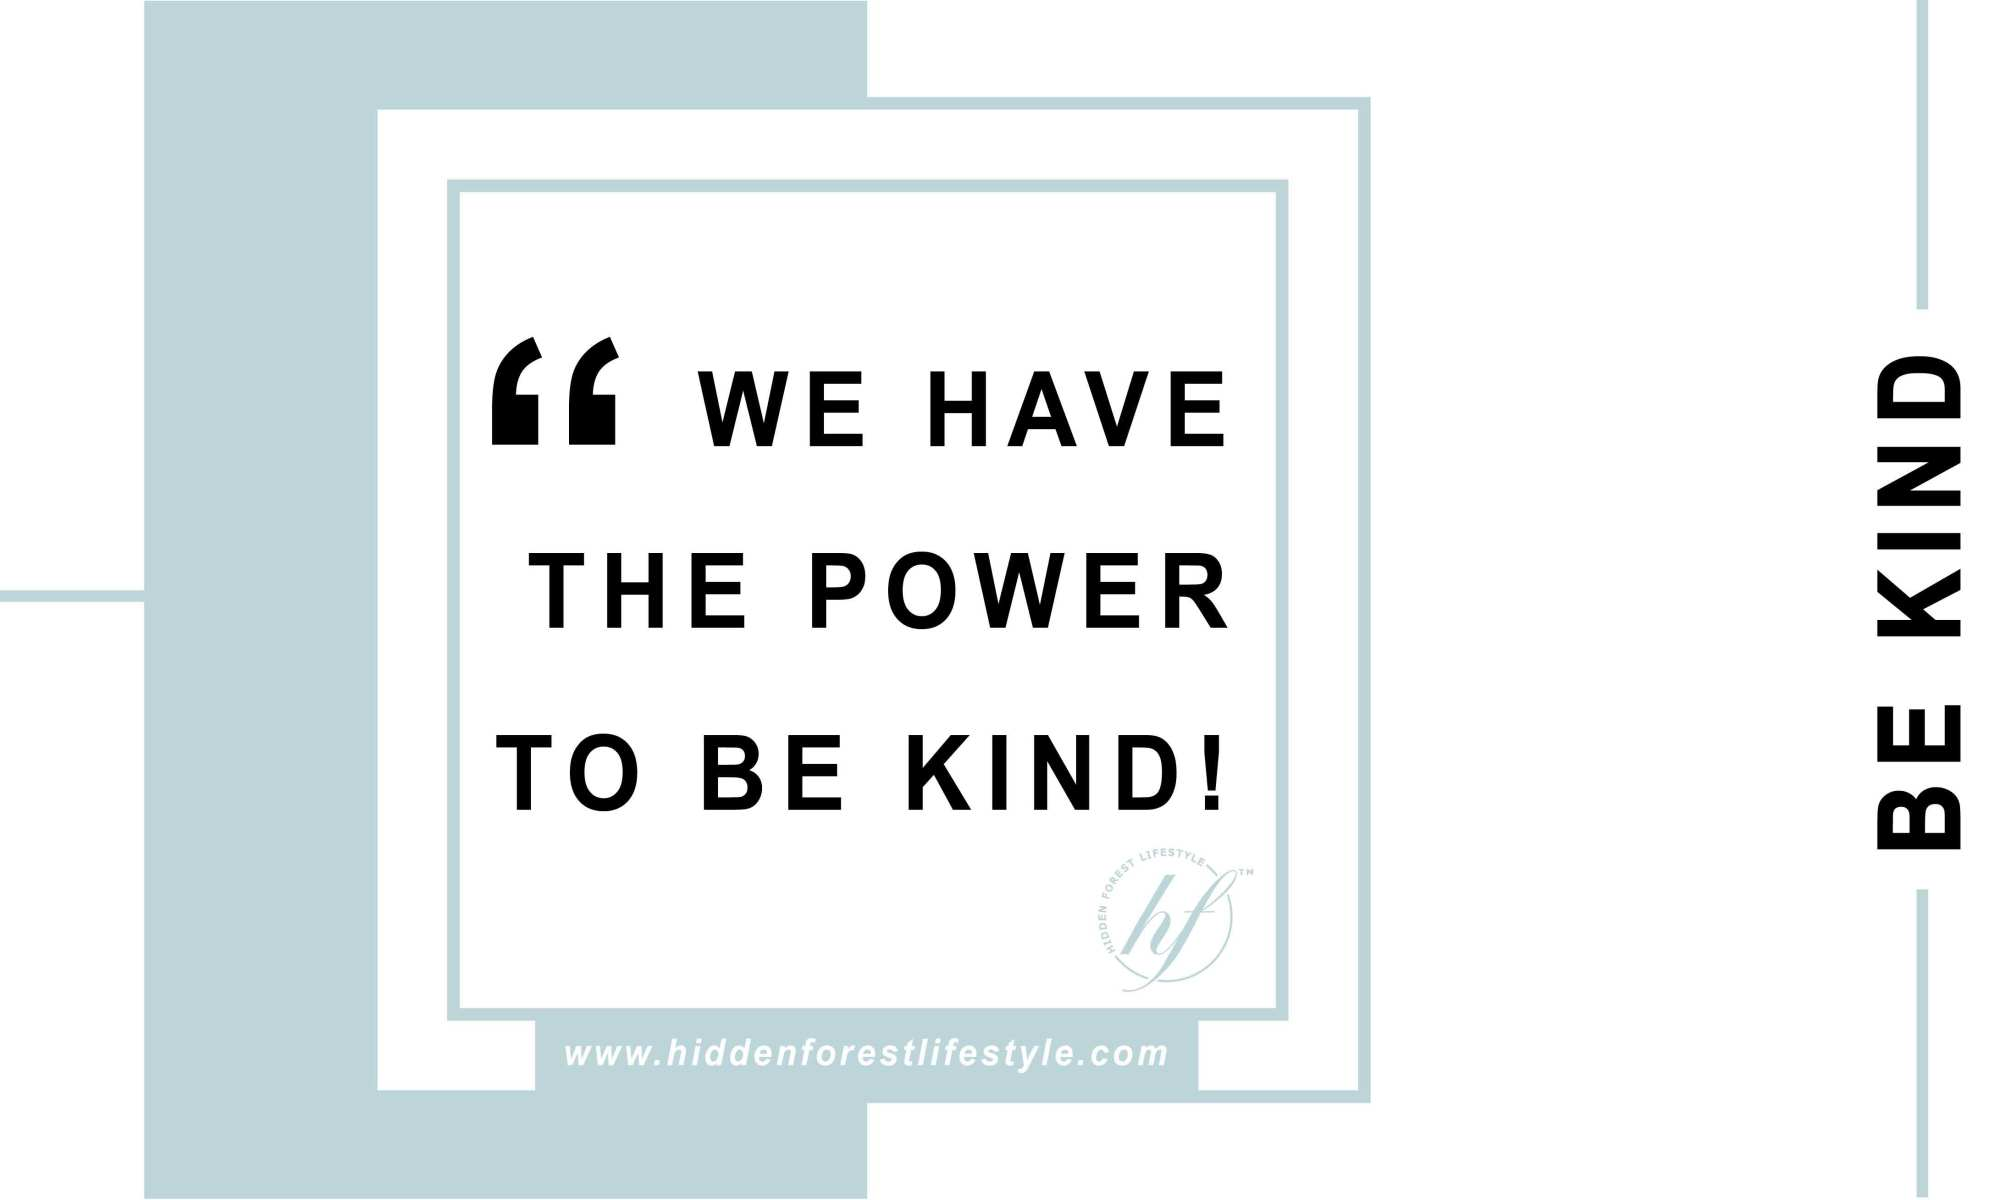 WE HAVE THE POWER TO BE KIND